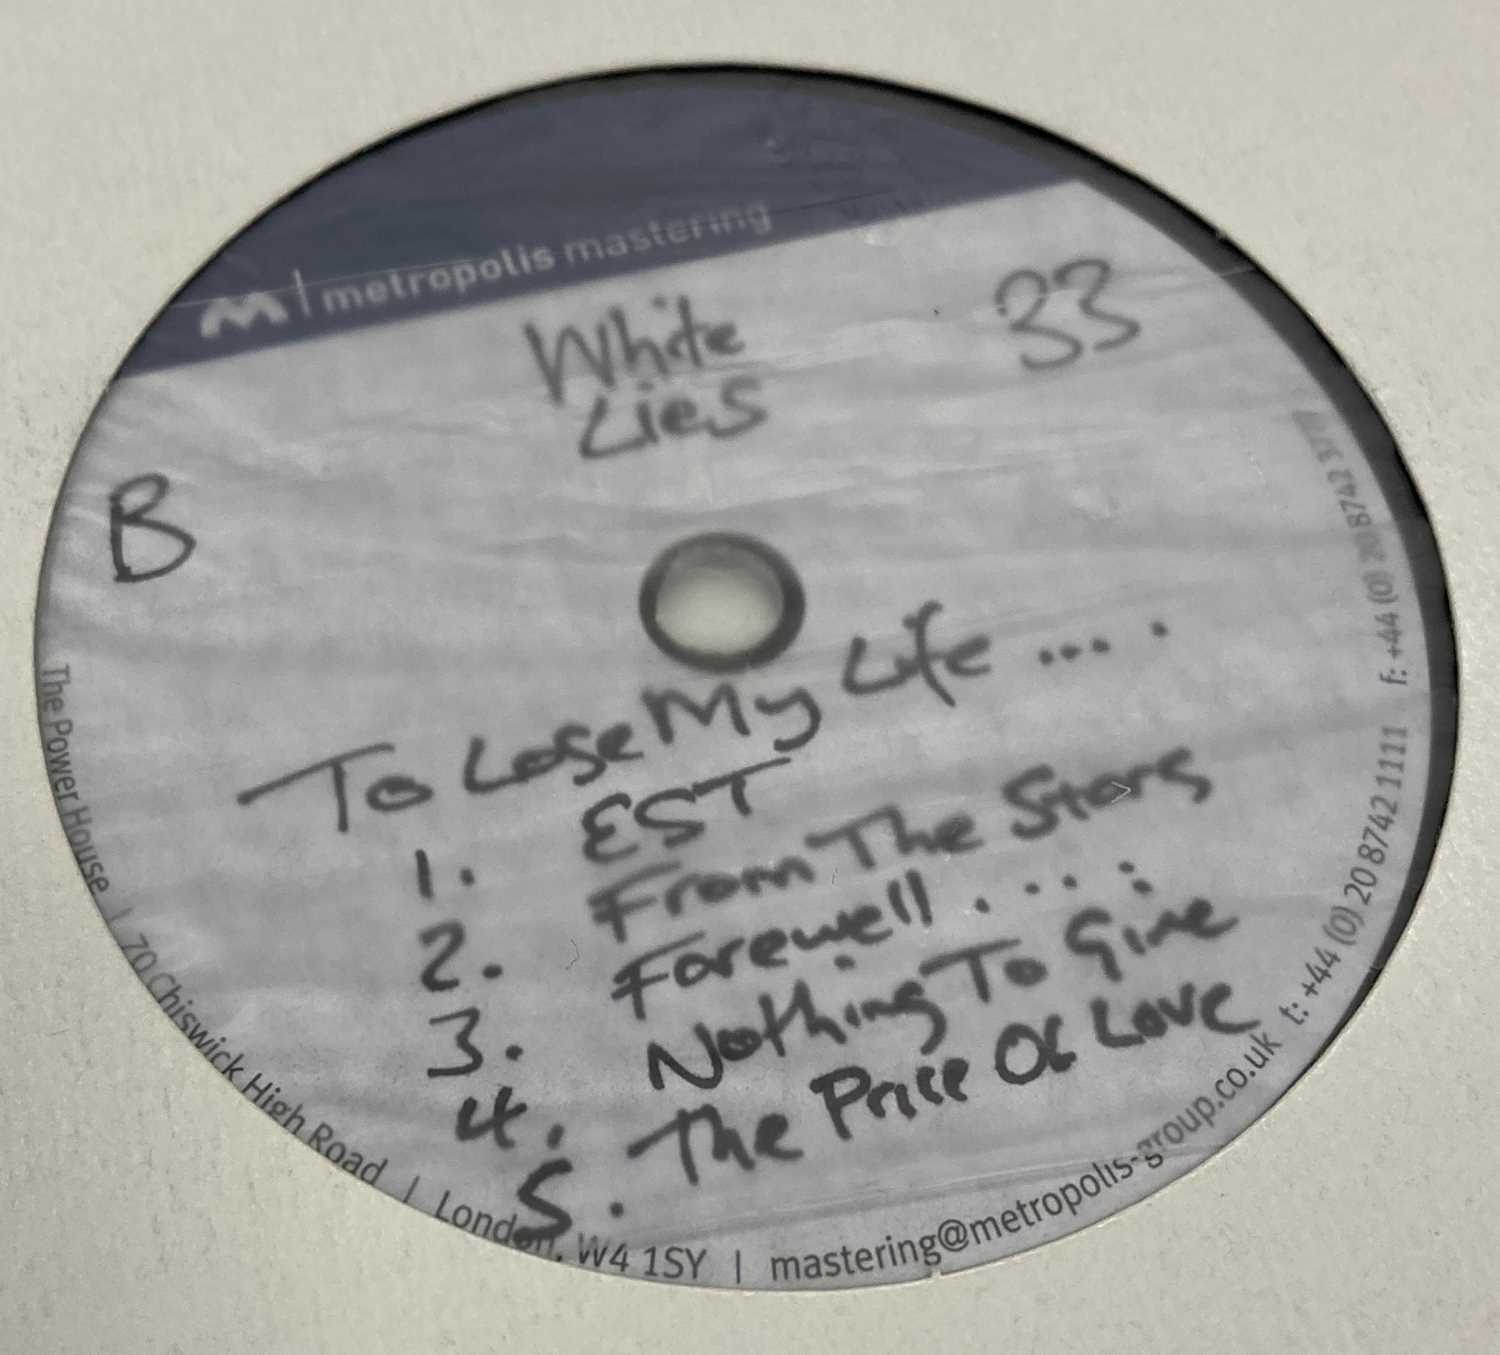 """WHITE LIES - TO LOSE MY LIFE & DEATH - LP/12"""" ACETATE RECORDINGS - Image 5 of 5"""